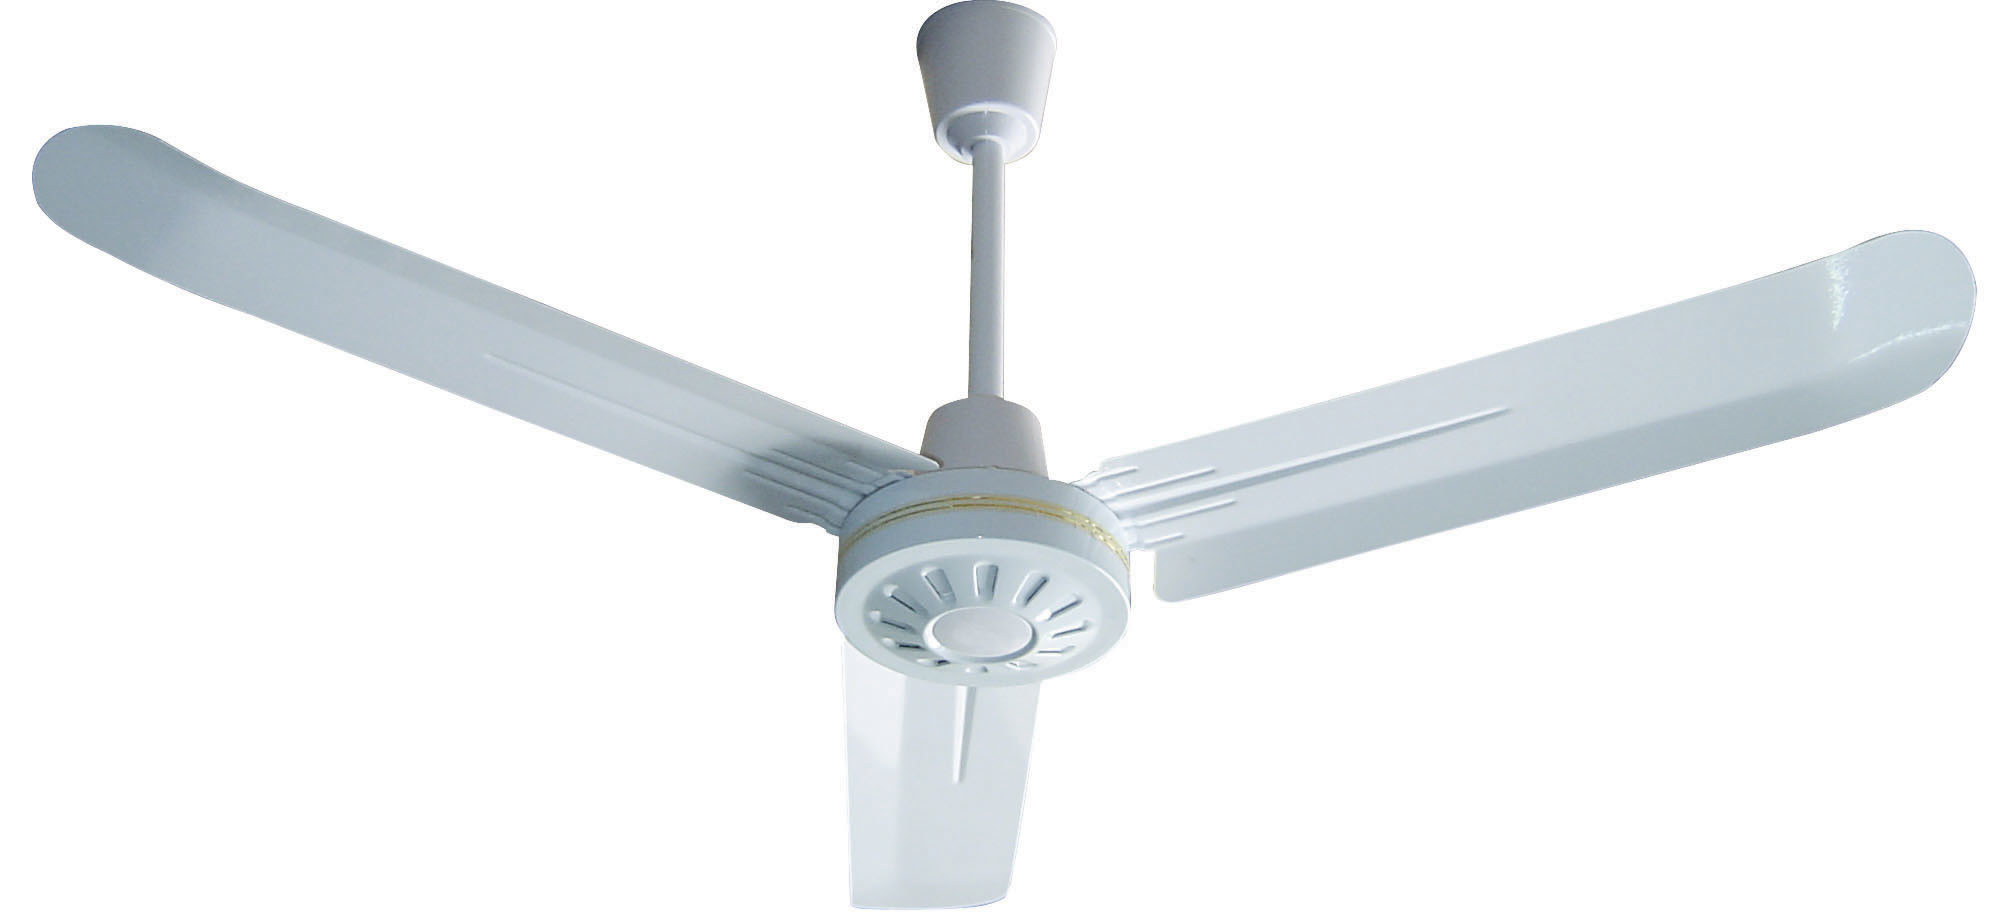 Ceiling Fans Images in addition Wiring For Ceiling Fan Electrical #546C77